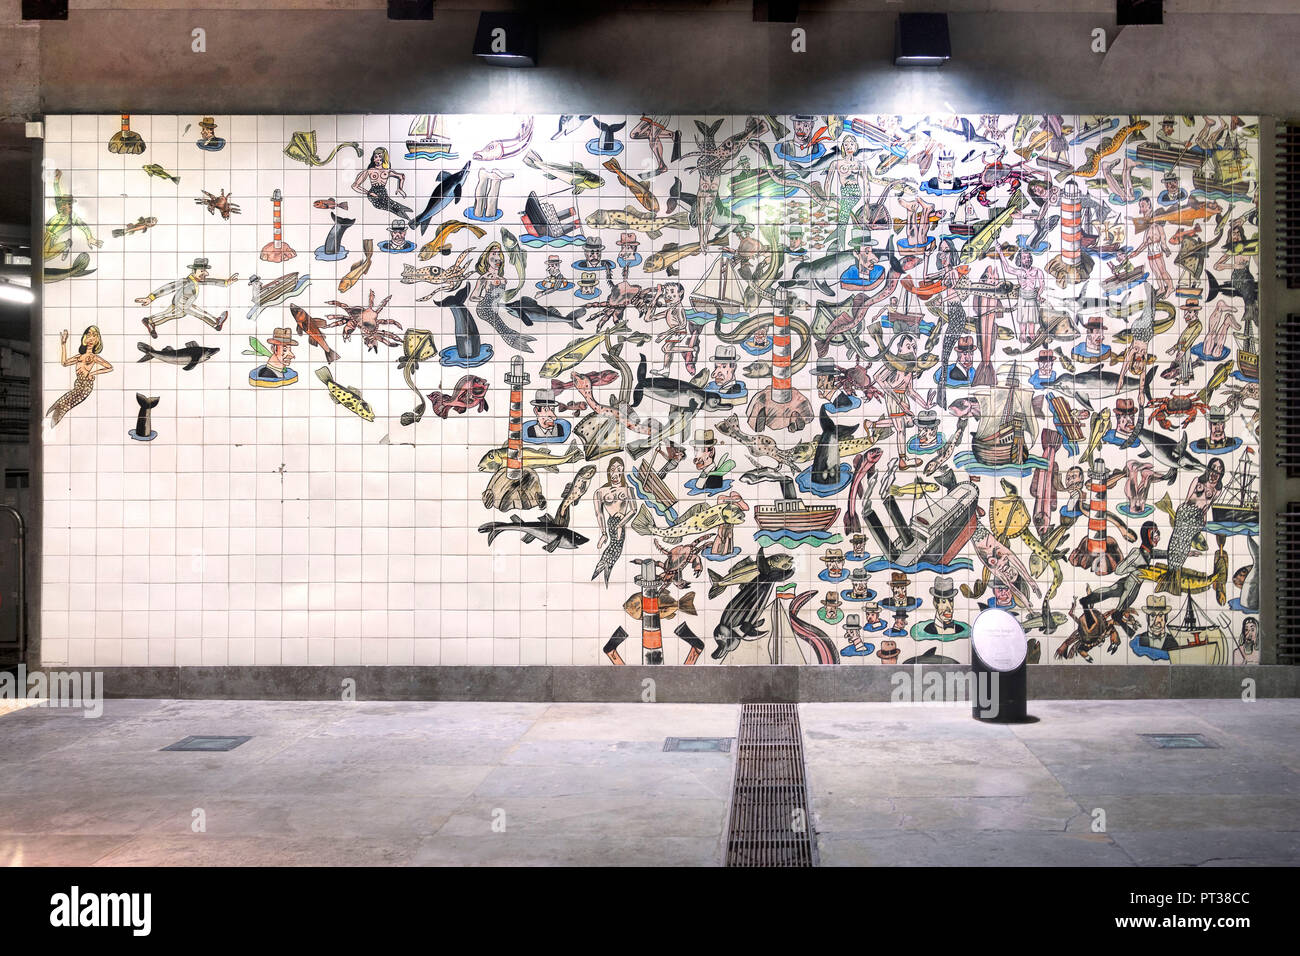 Portugal, Lisbon, Estação do Oriente, artistical designed wall tile pictures in the metro - Stock Image